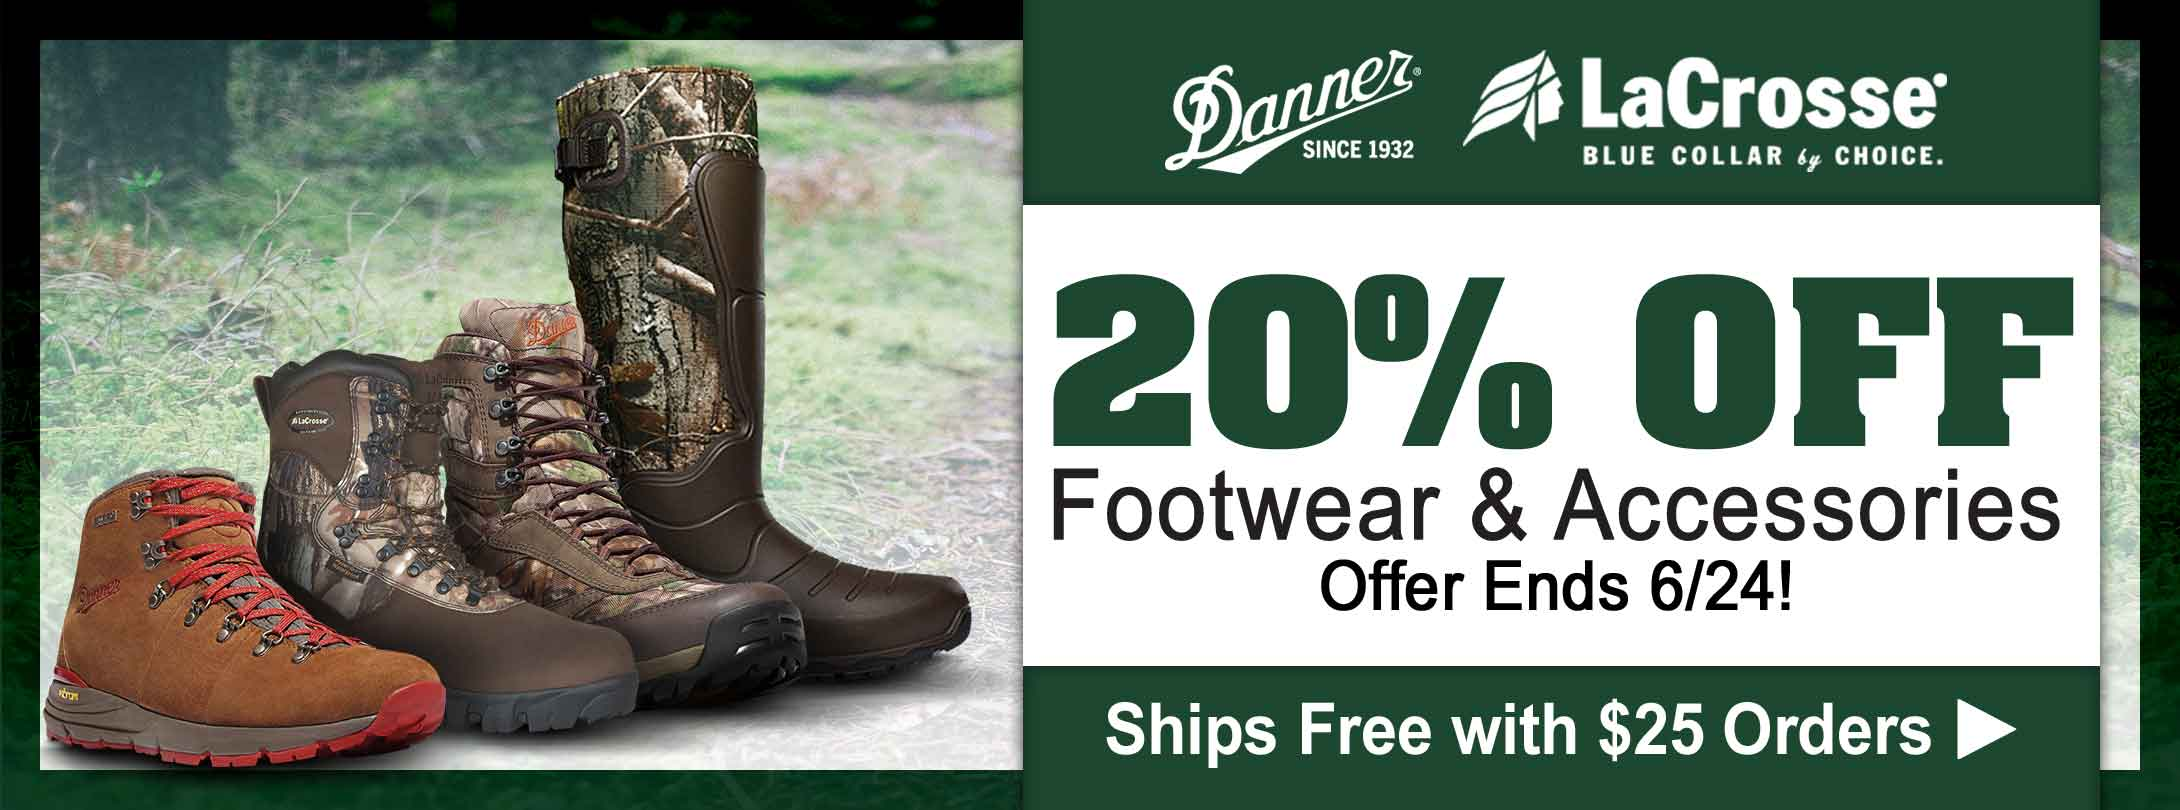 Save 20% + Free Shipping with $25 Orders on Danner & LaCrosse Footwear & Accessories